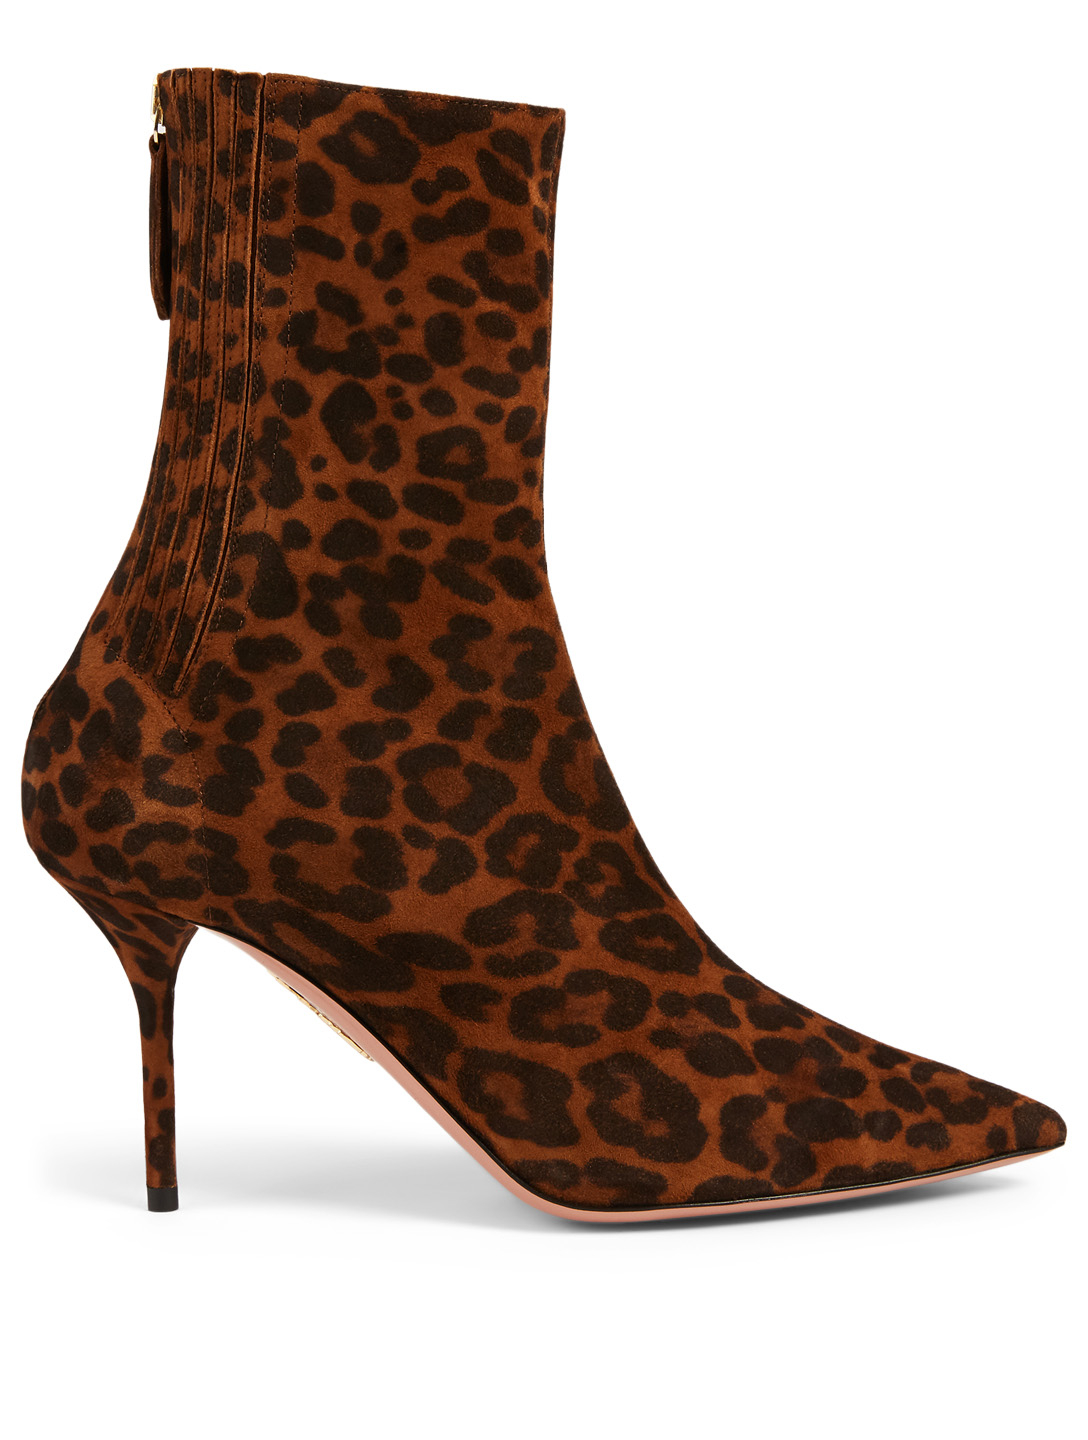 AQUAZZURA Saint Honore' 85 Suede Ankle Boots  In Leopard Print Women's Brown